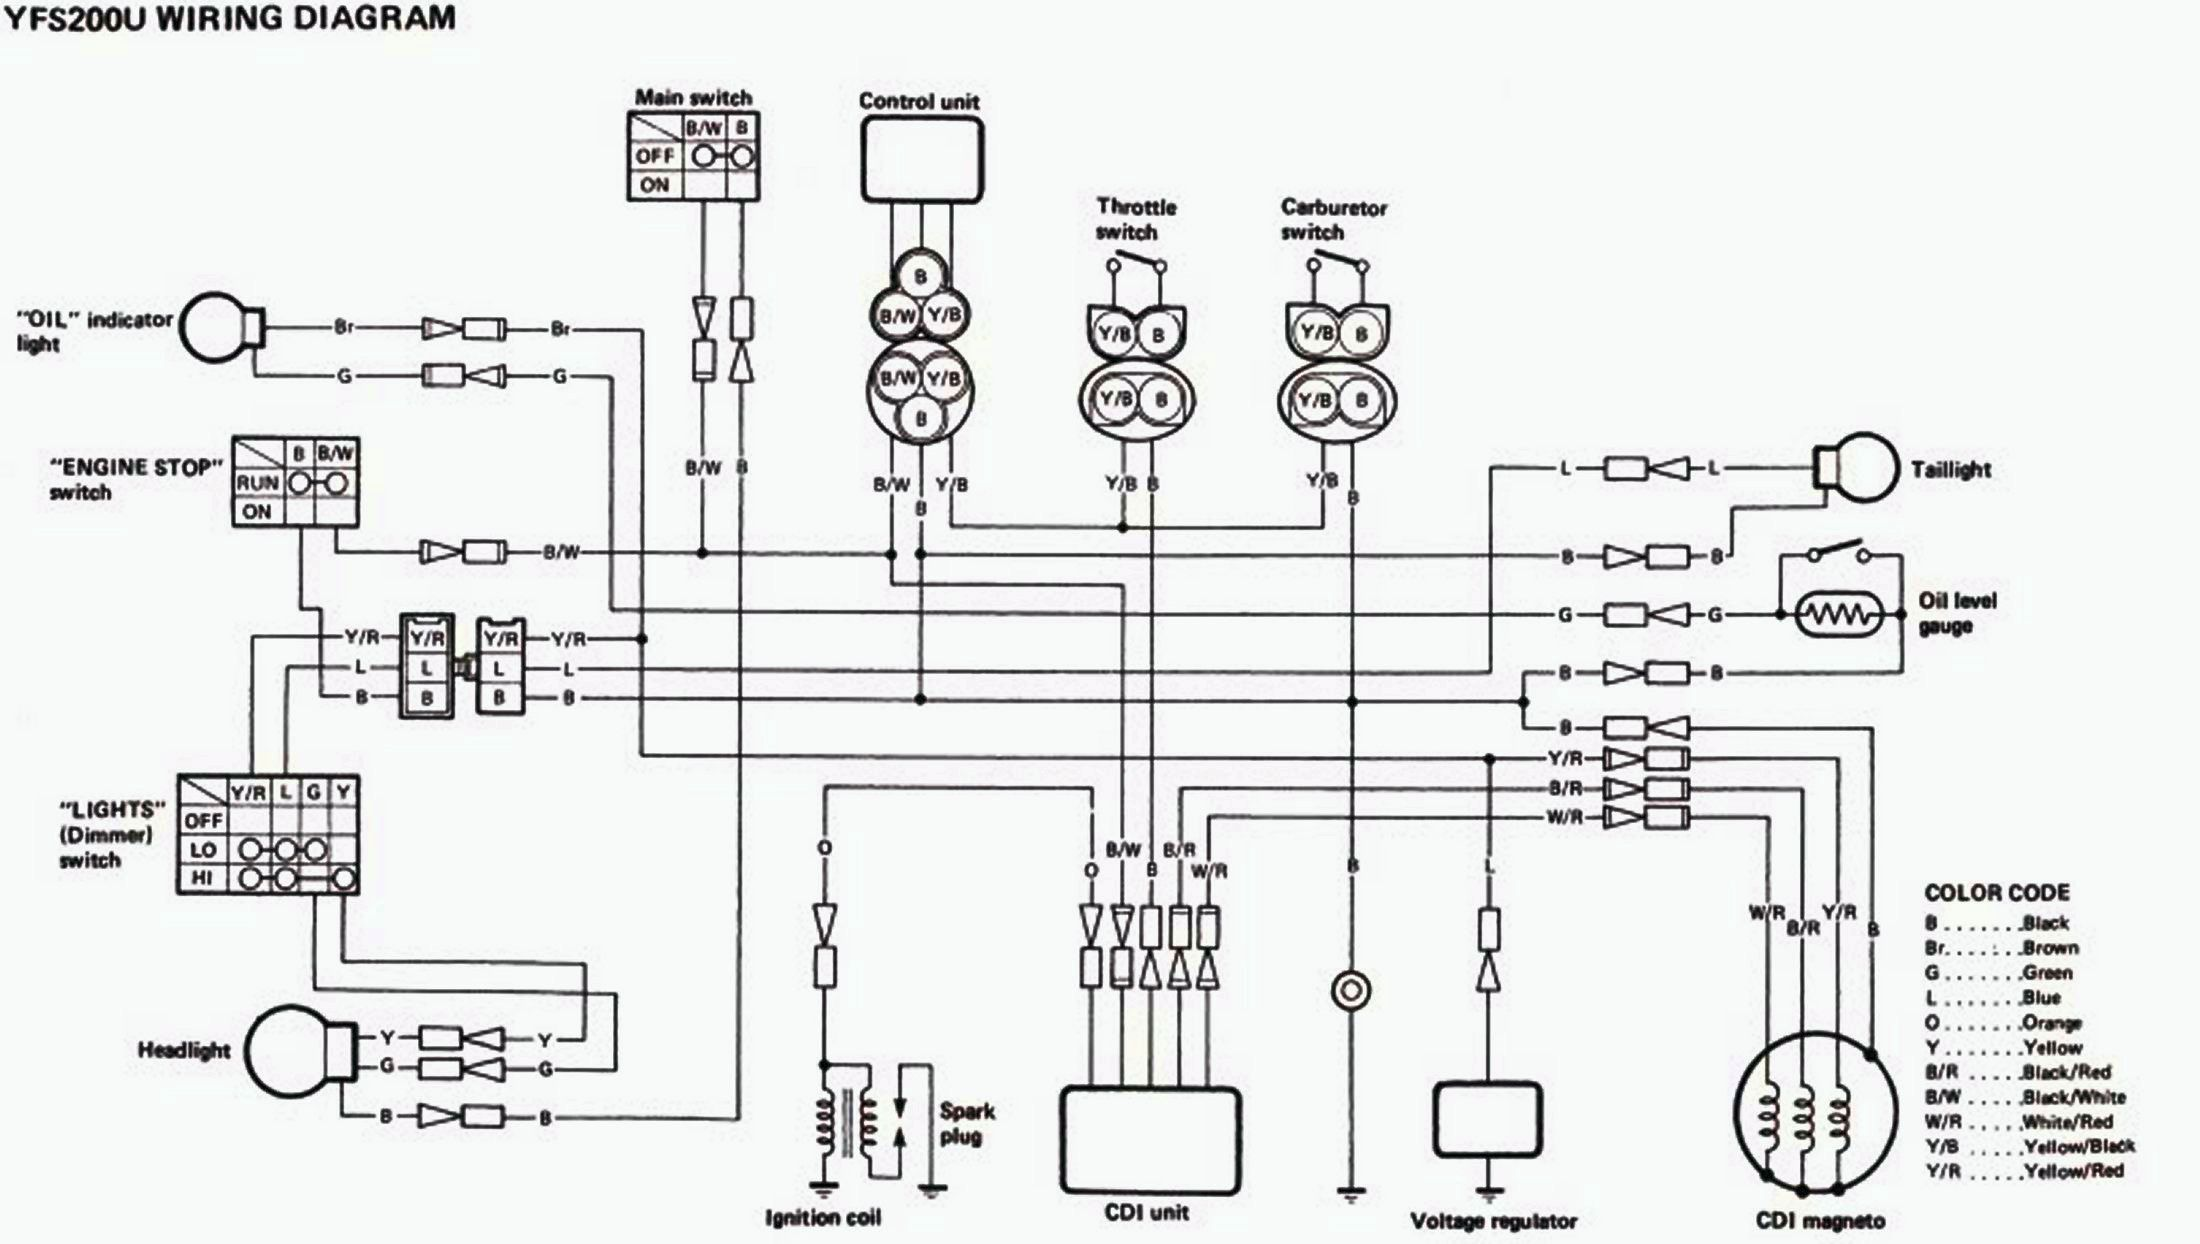 yamaha blaster wiring 1996 toyota land cruiser electrical diagram ewd stock diagrams blasterforum